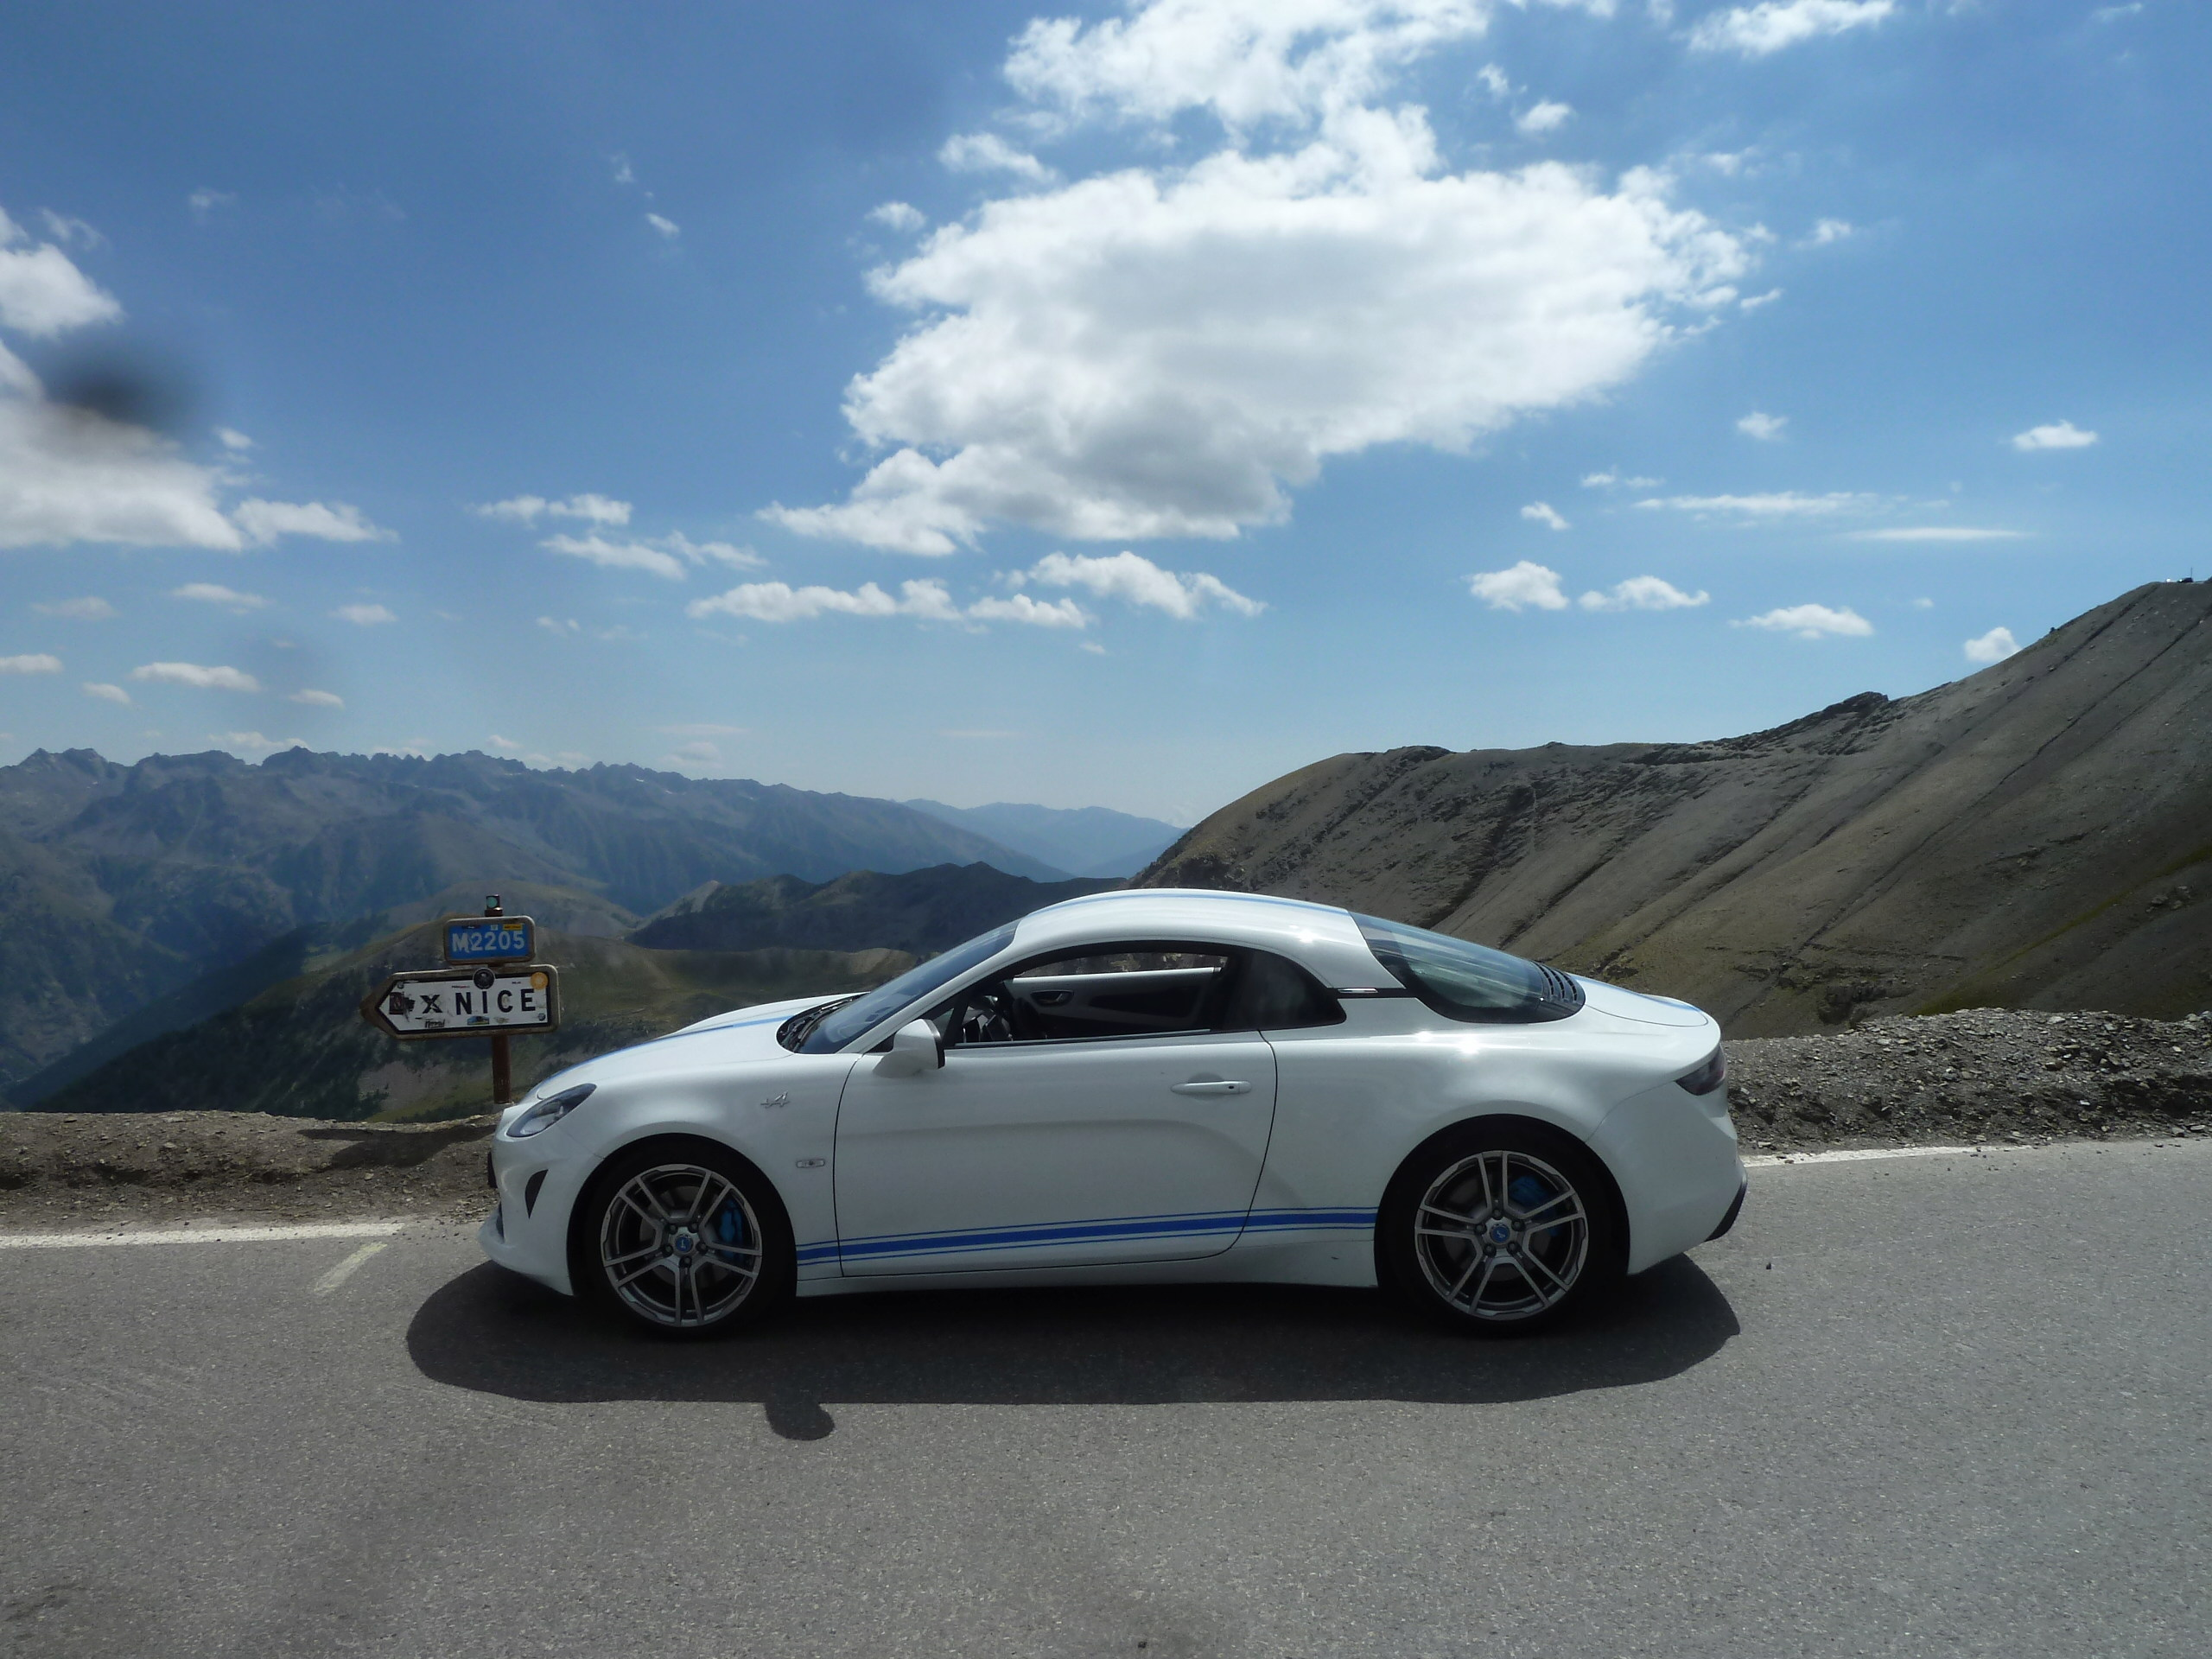 2017 - [Alpine] A110 [AS1] - Page 16 P1130210